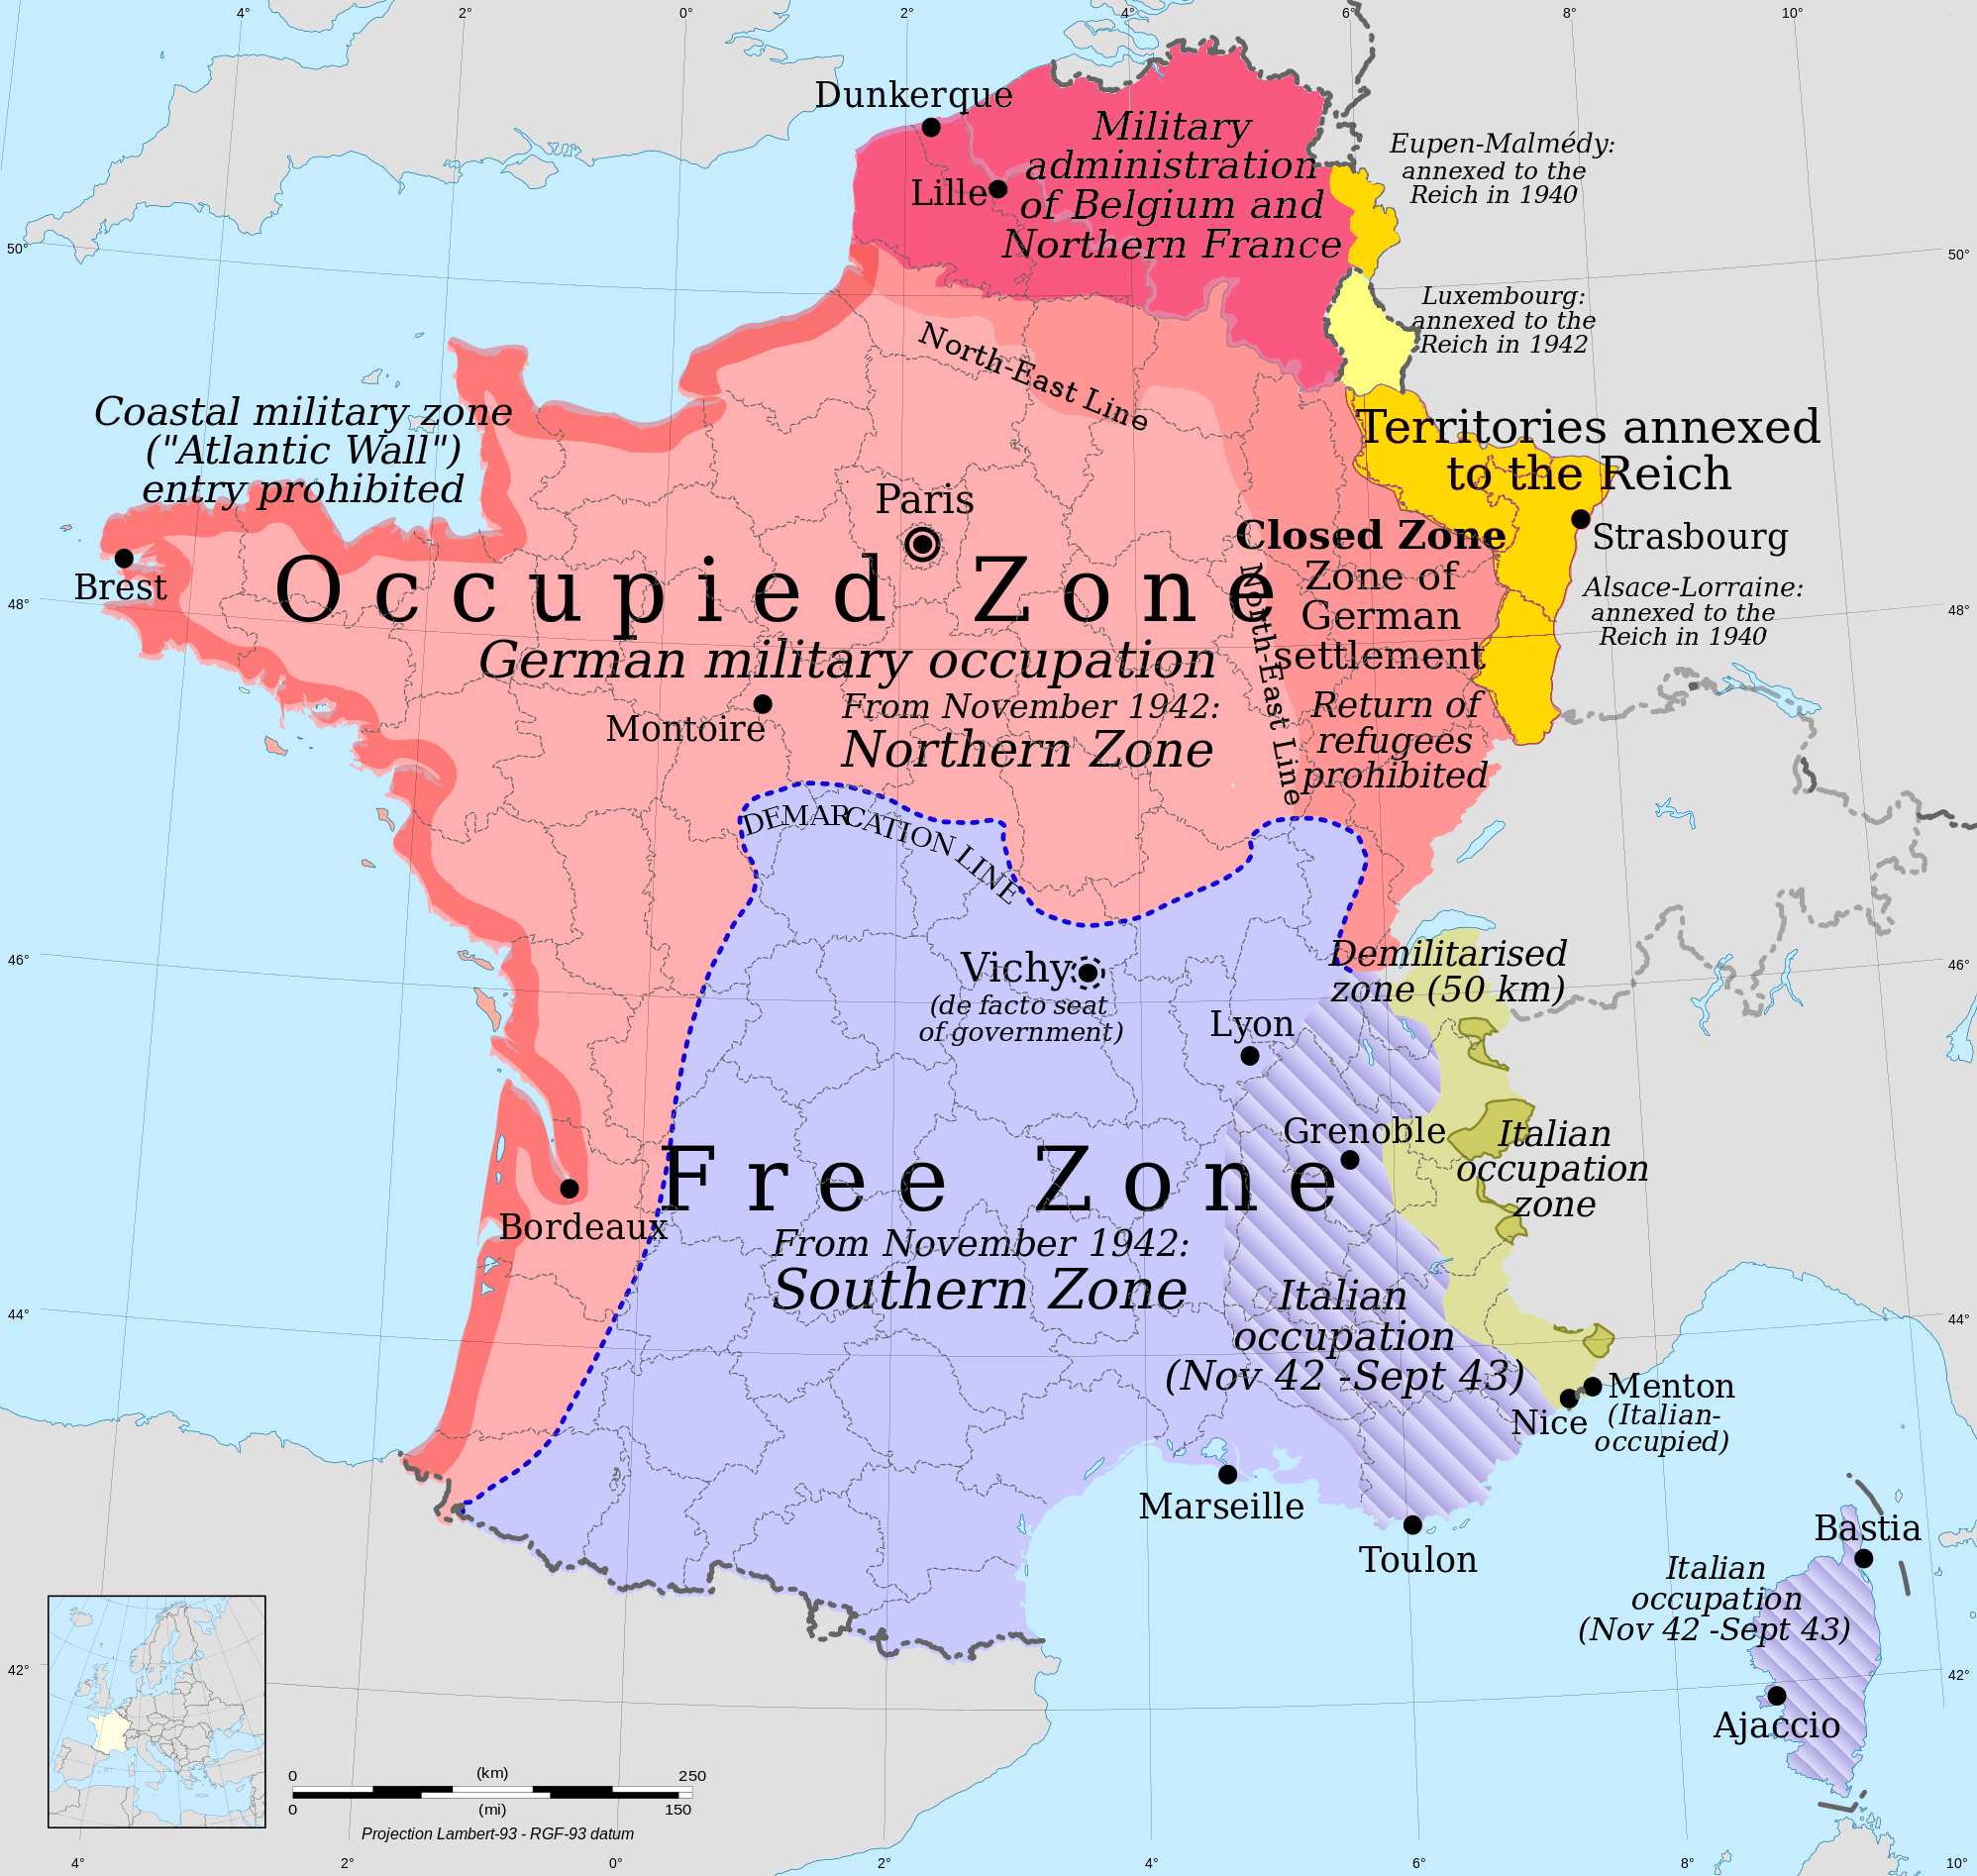 Philippe ptain who delivered an radio address to the french people mapsontheweb map of occupied france more world war 2 maps gumiabroncs Choice Image